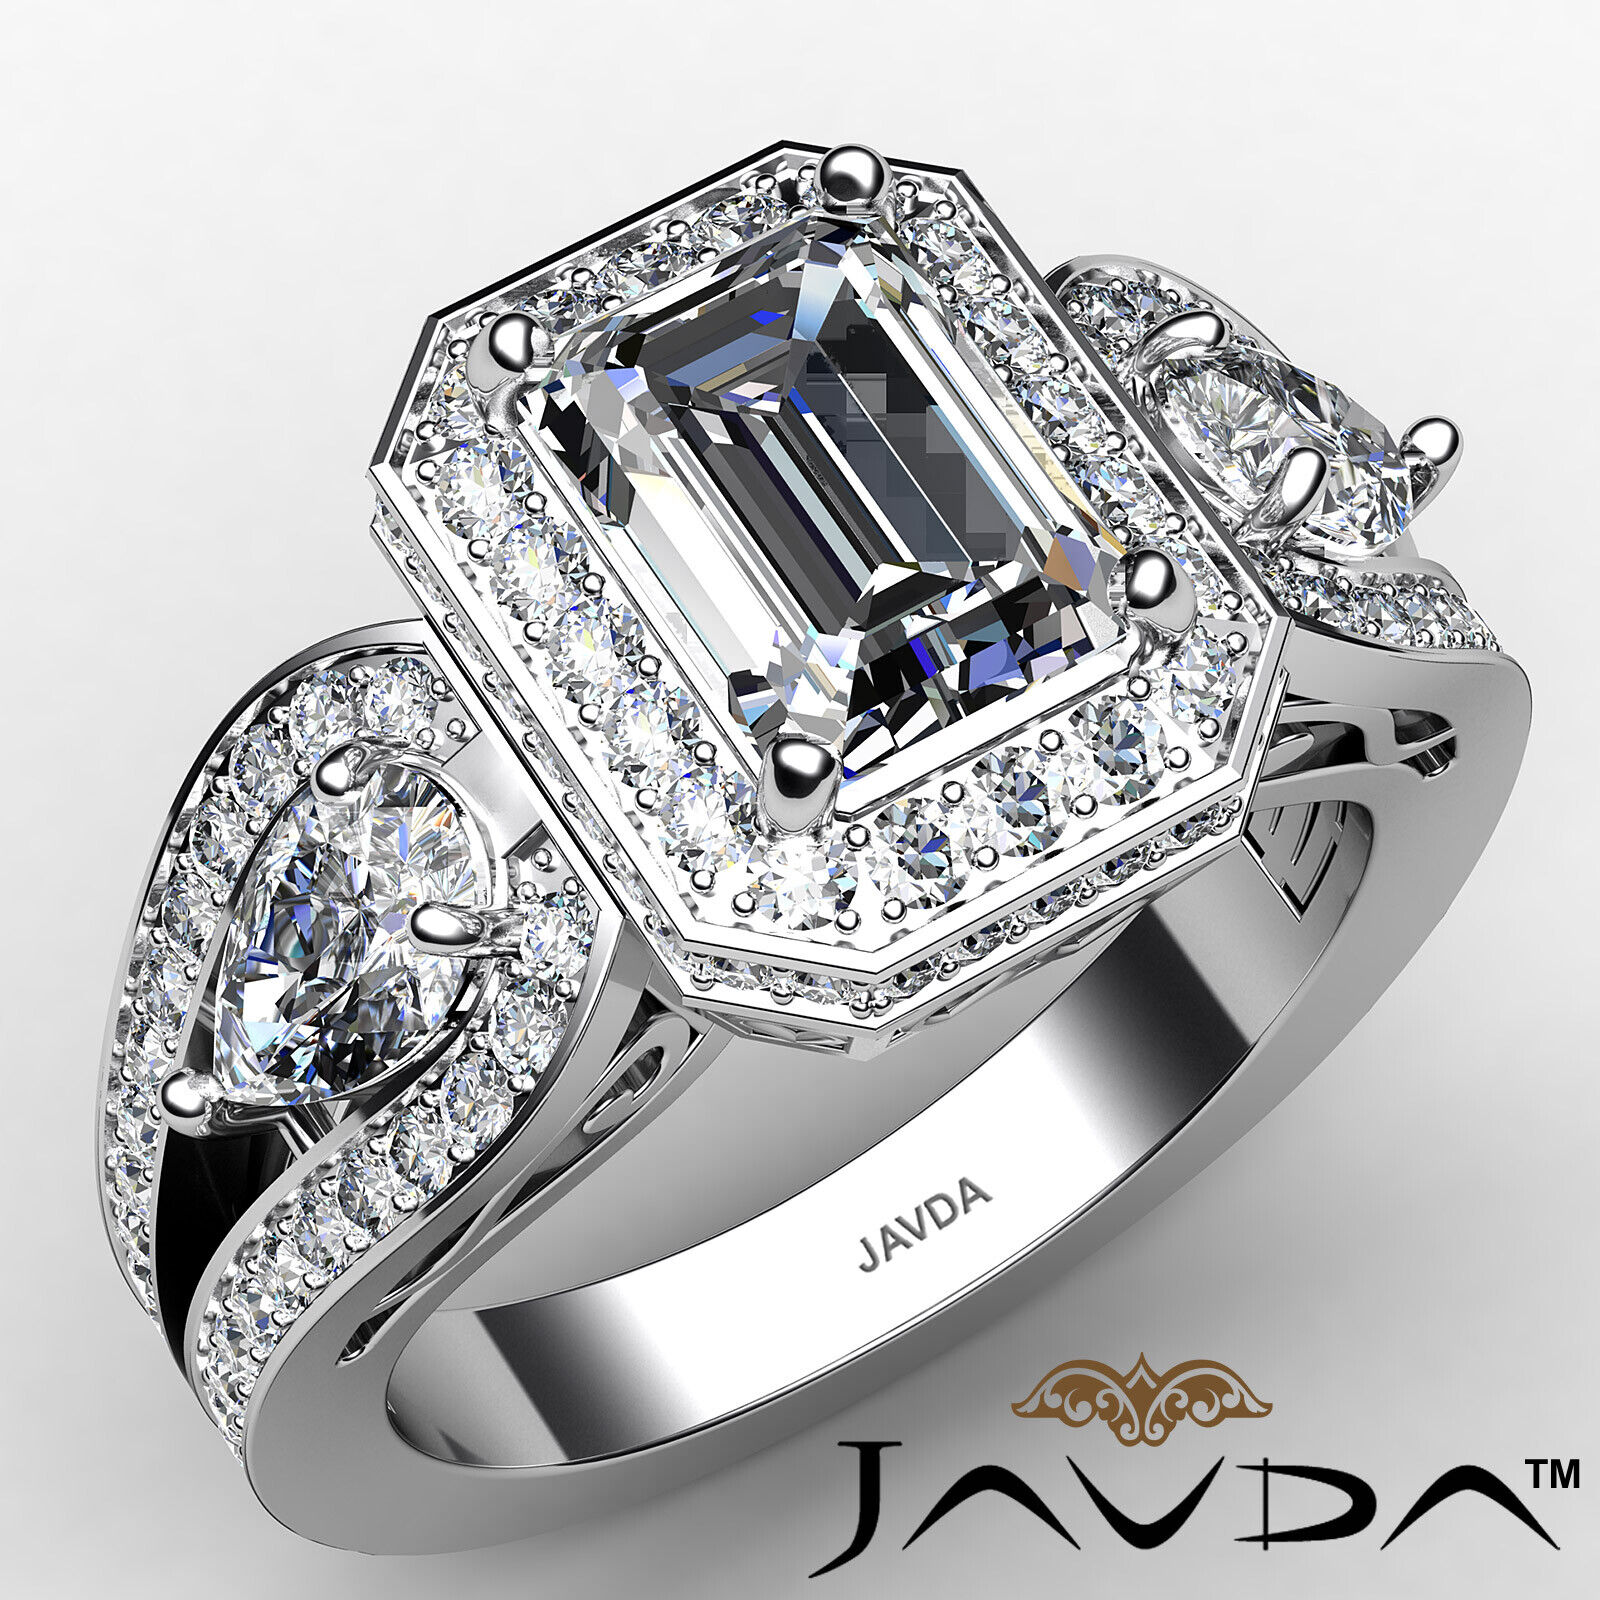 Halo Emerald Diamond Engagement Ring GIA Certified J Color & VS2 clarity 2.85ctw